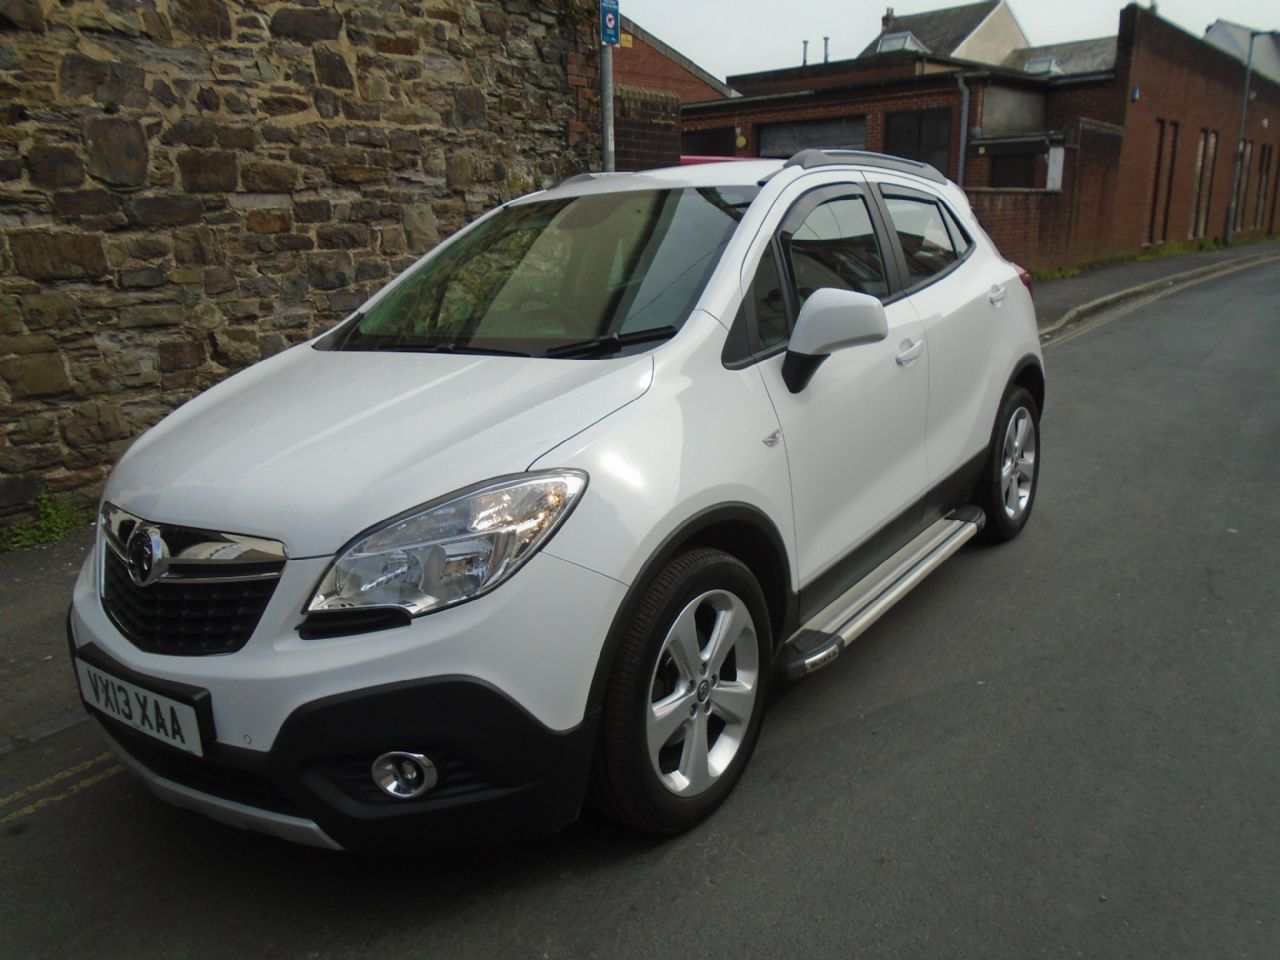 VAUXHALL Mokka Exclusiv 1.6 16v 115PS S/S 5-spd - Picture 3